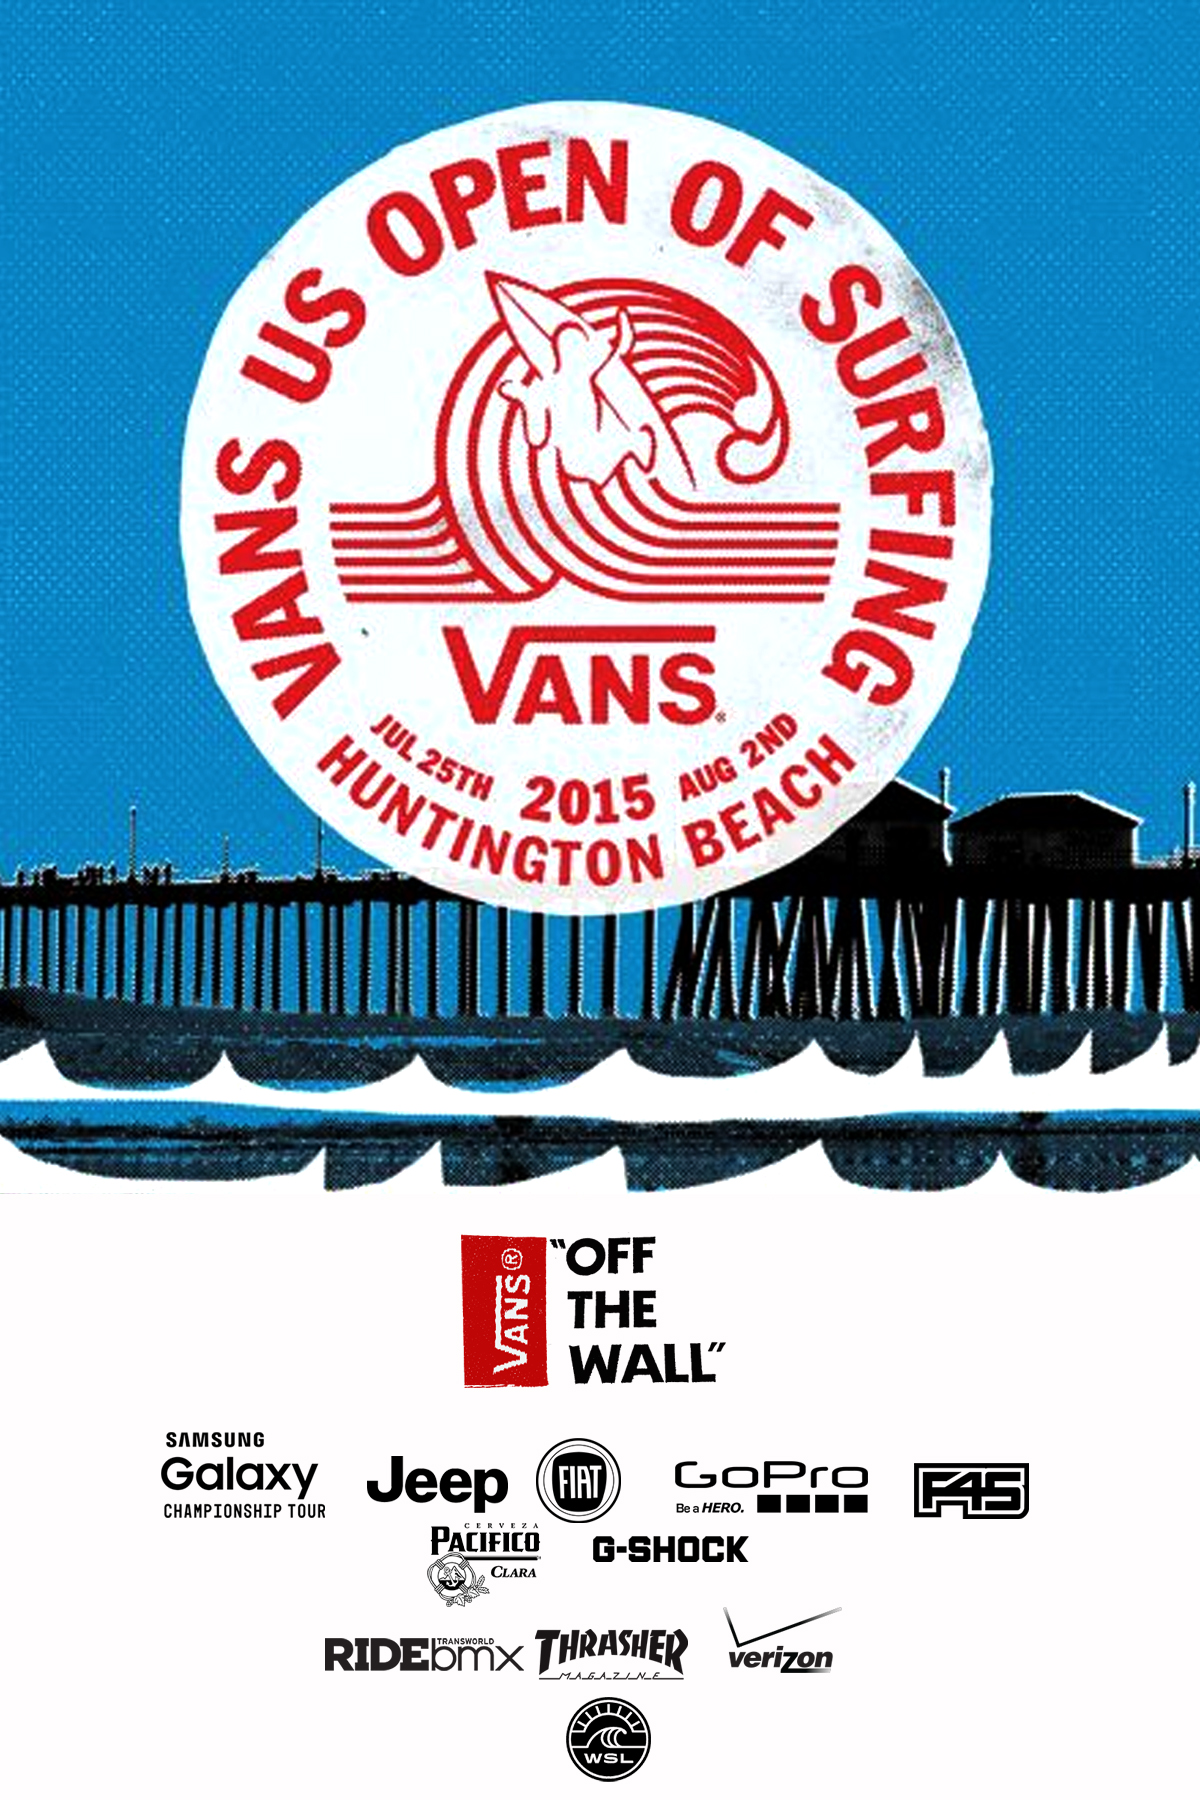 549397c8cd Vans US Open of Surfing 2015